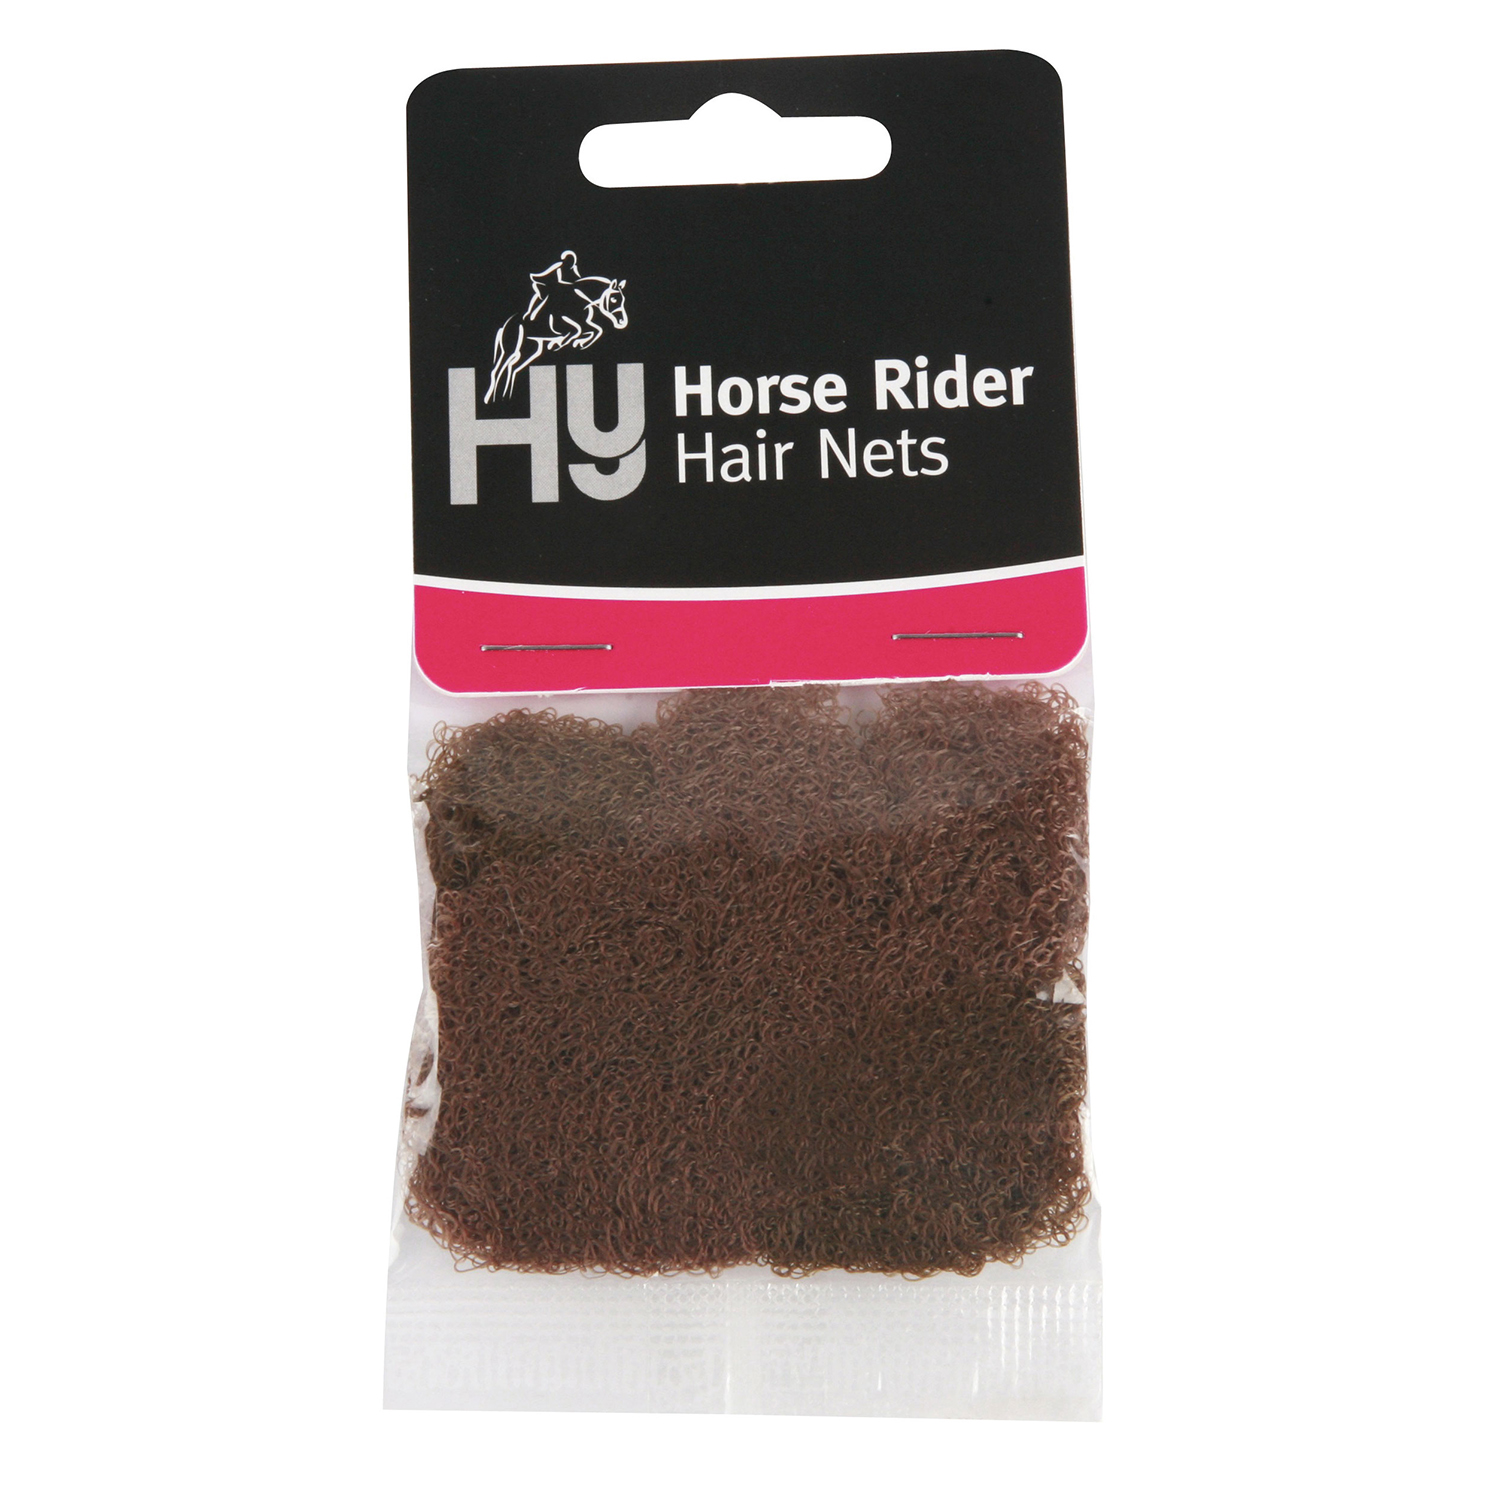 Blonde Brown Standard or Heavy Weight Competition Horse Riding Hair Net Black